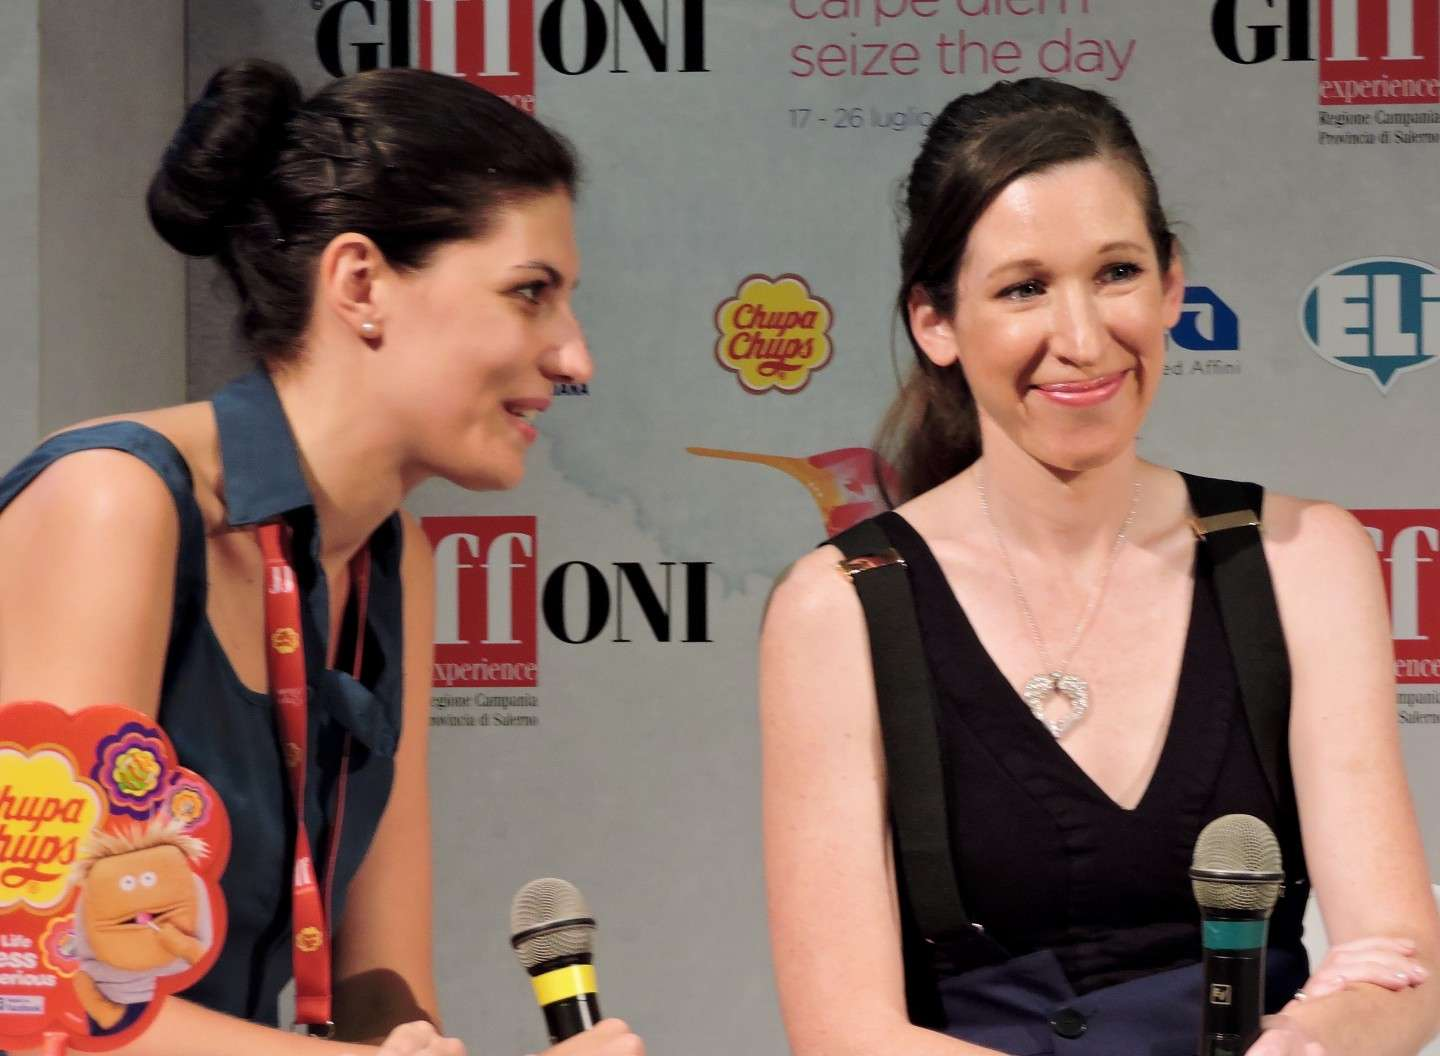 Lauren Kate a Giffoni 2015